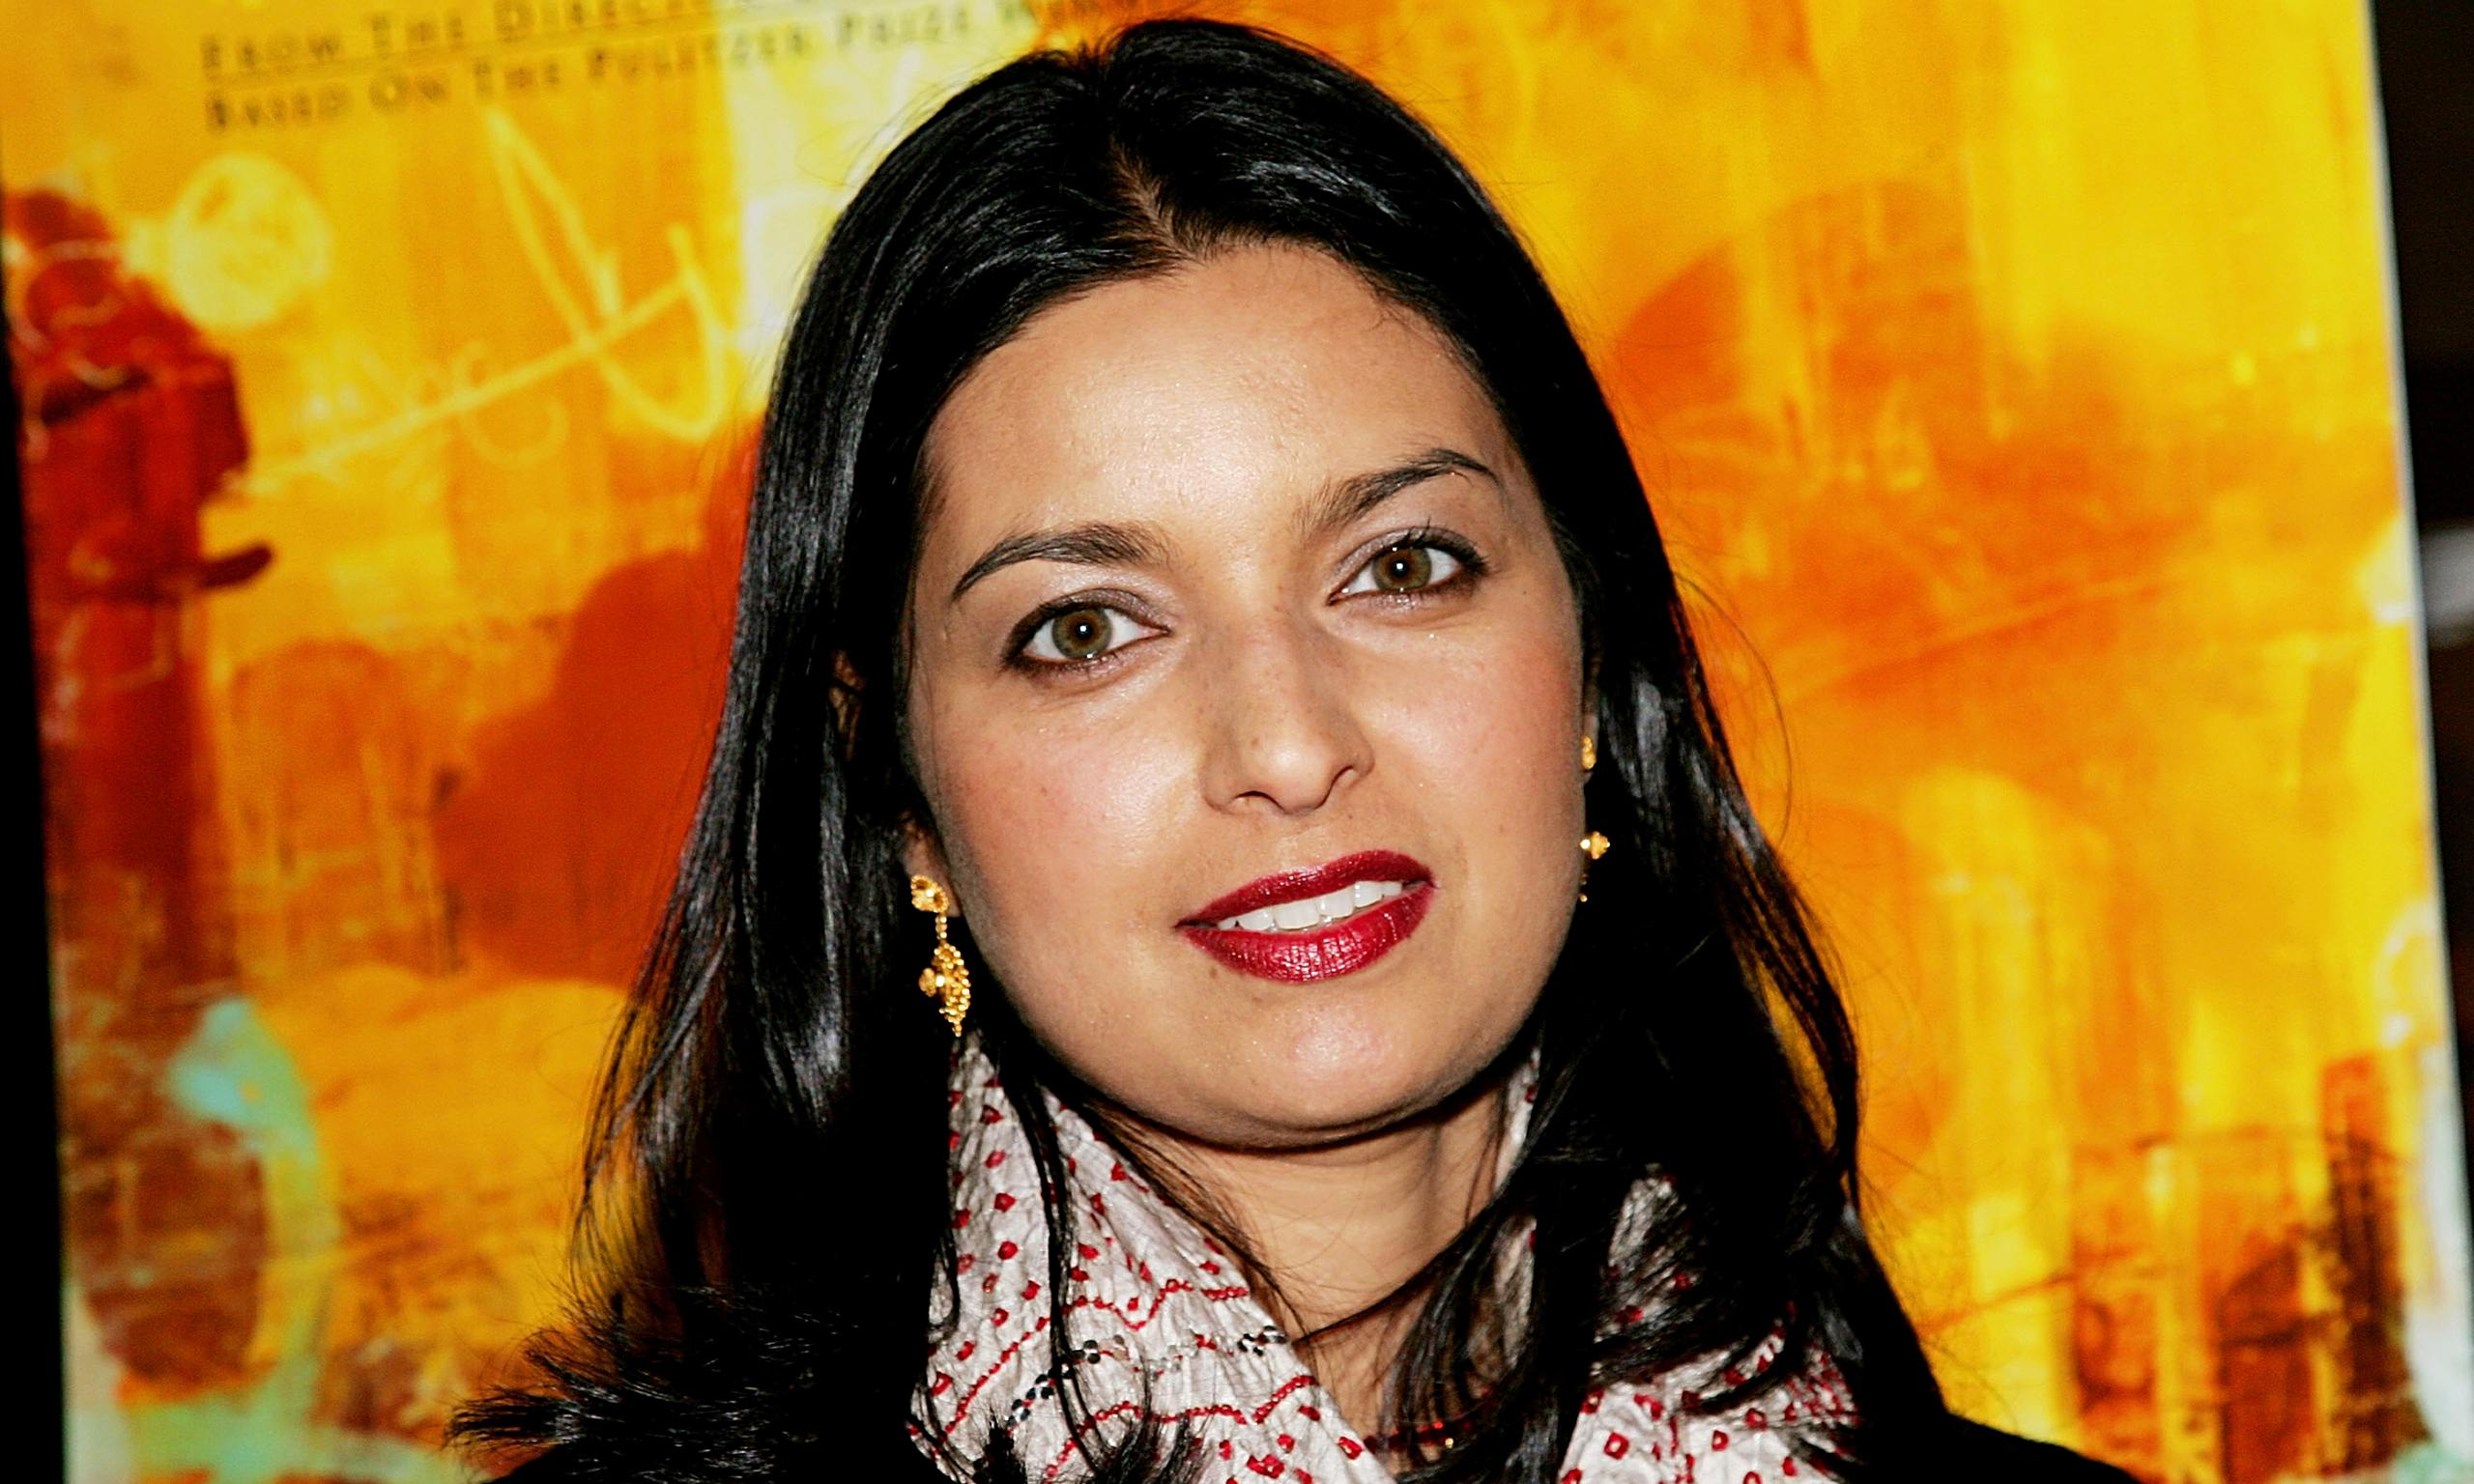 a review of interpreter of maladies by jhumpa lahiri Buy interpreter of maladies by jhumpa lahiri from amazon's fiction books store everyday low prices on a huge range of new releases and classic fiction.